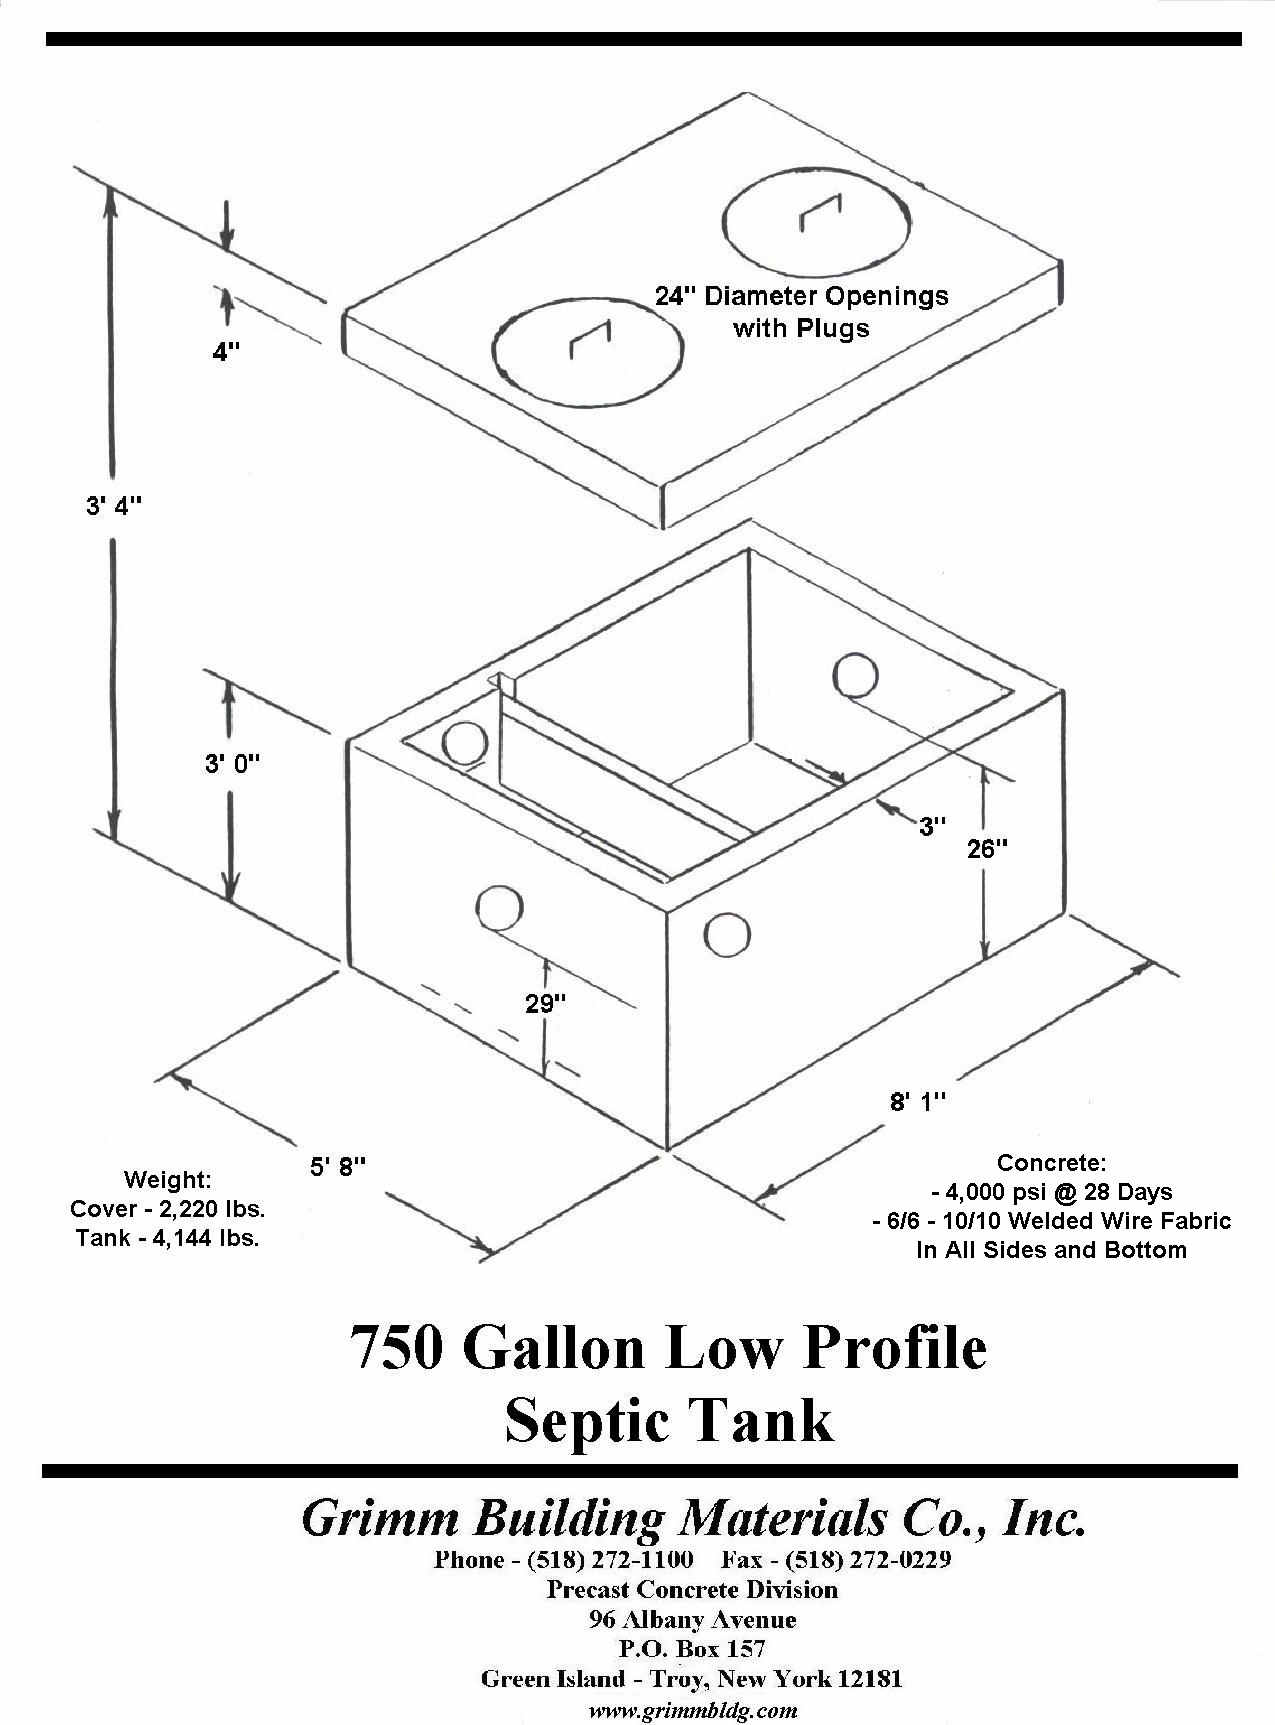 1000 Gallon Septic Tank Diagram Electrical Wiring Diagrams Schematic Cesspool Drawing At Getdrawings Com Free For Personal Use Layout